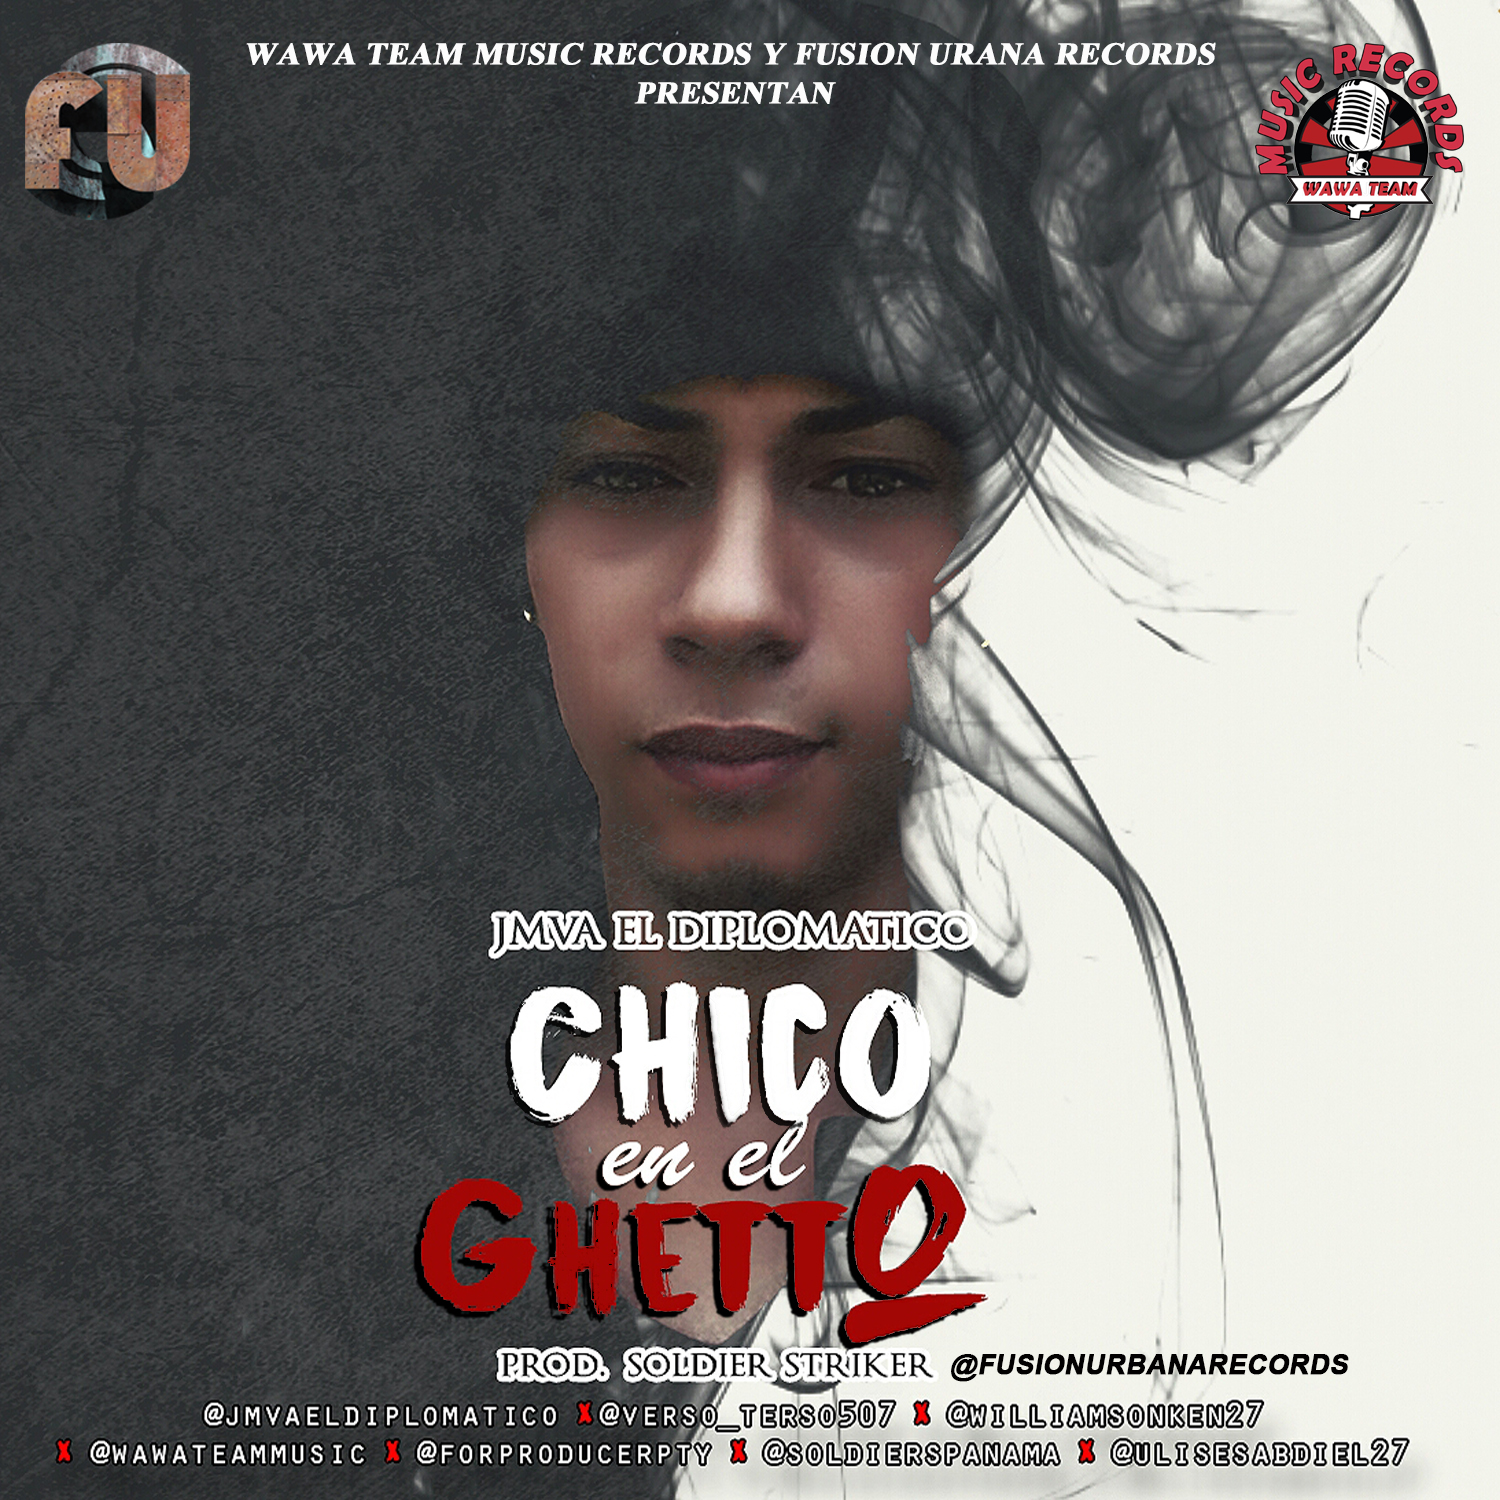 Diplomatico - Chico en el Ghetto